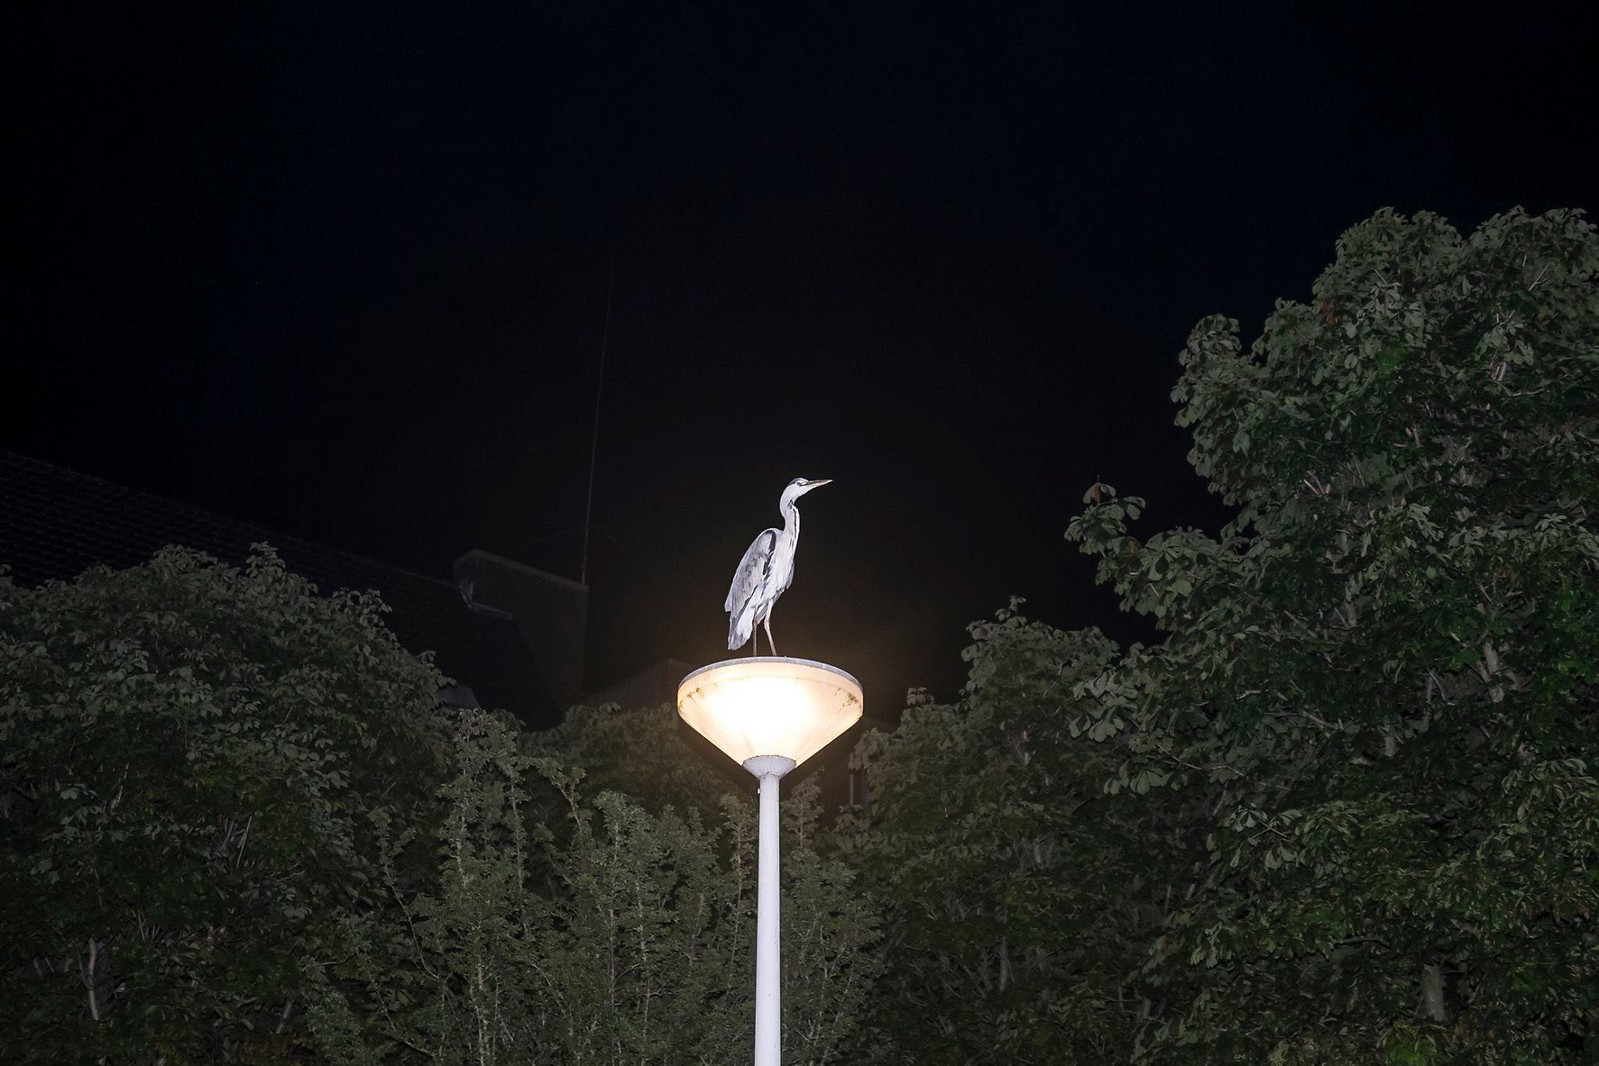 Late night heron hunting | by juliehrudova